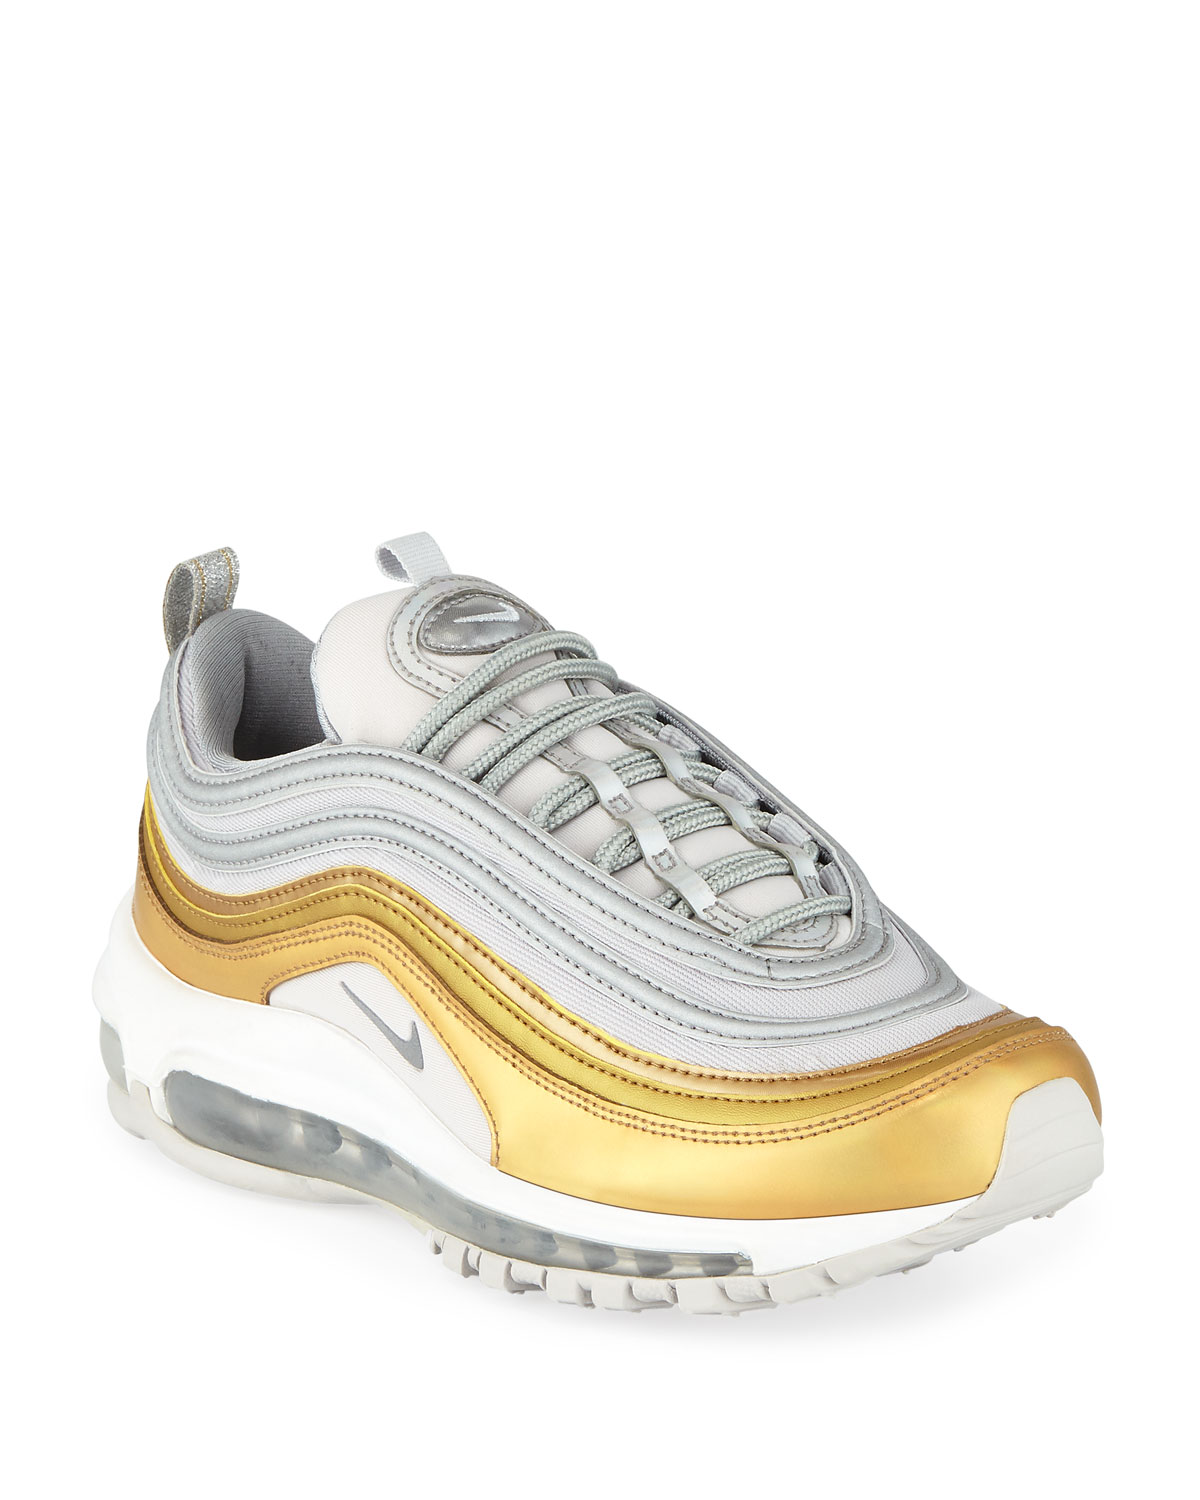 Air Max 97 Special Edition Sneakers